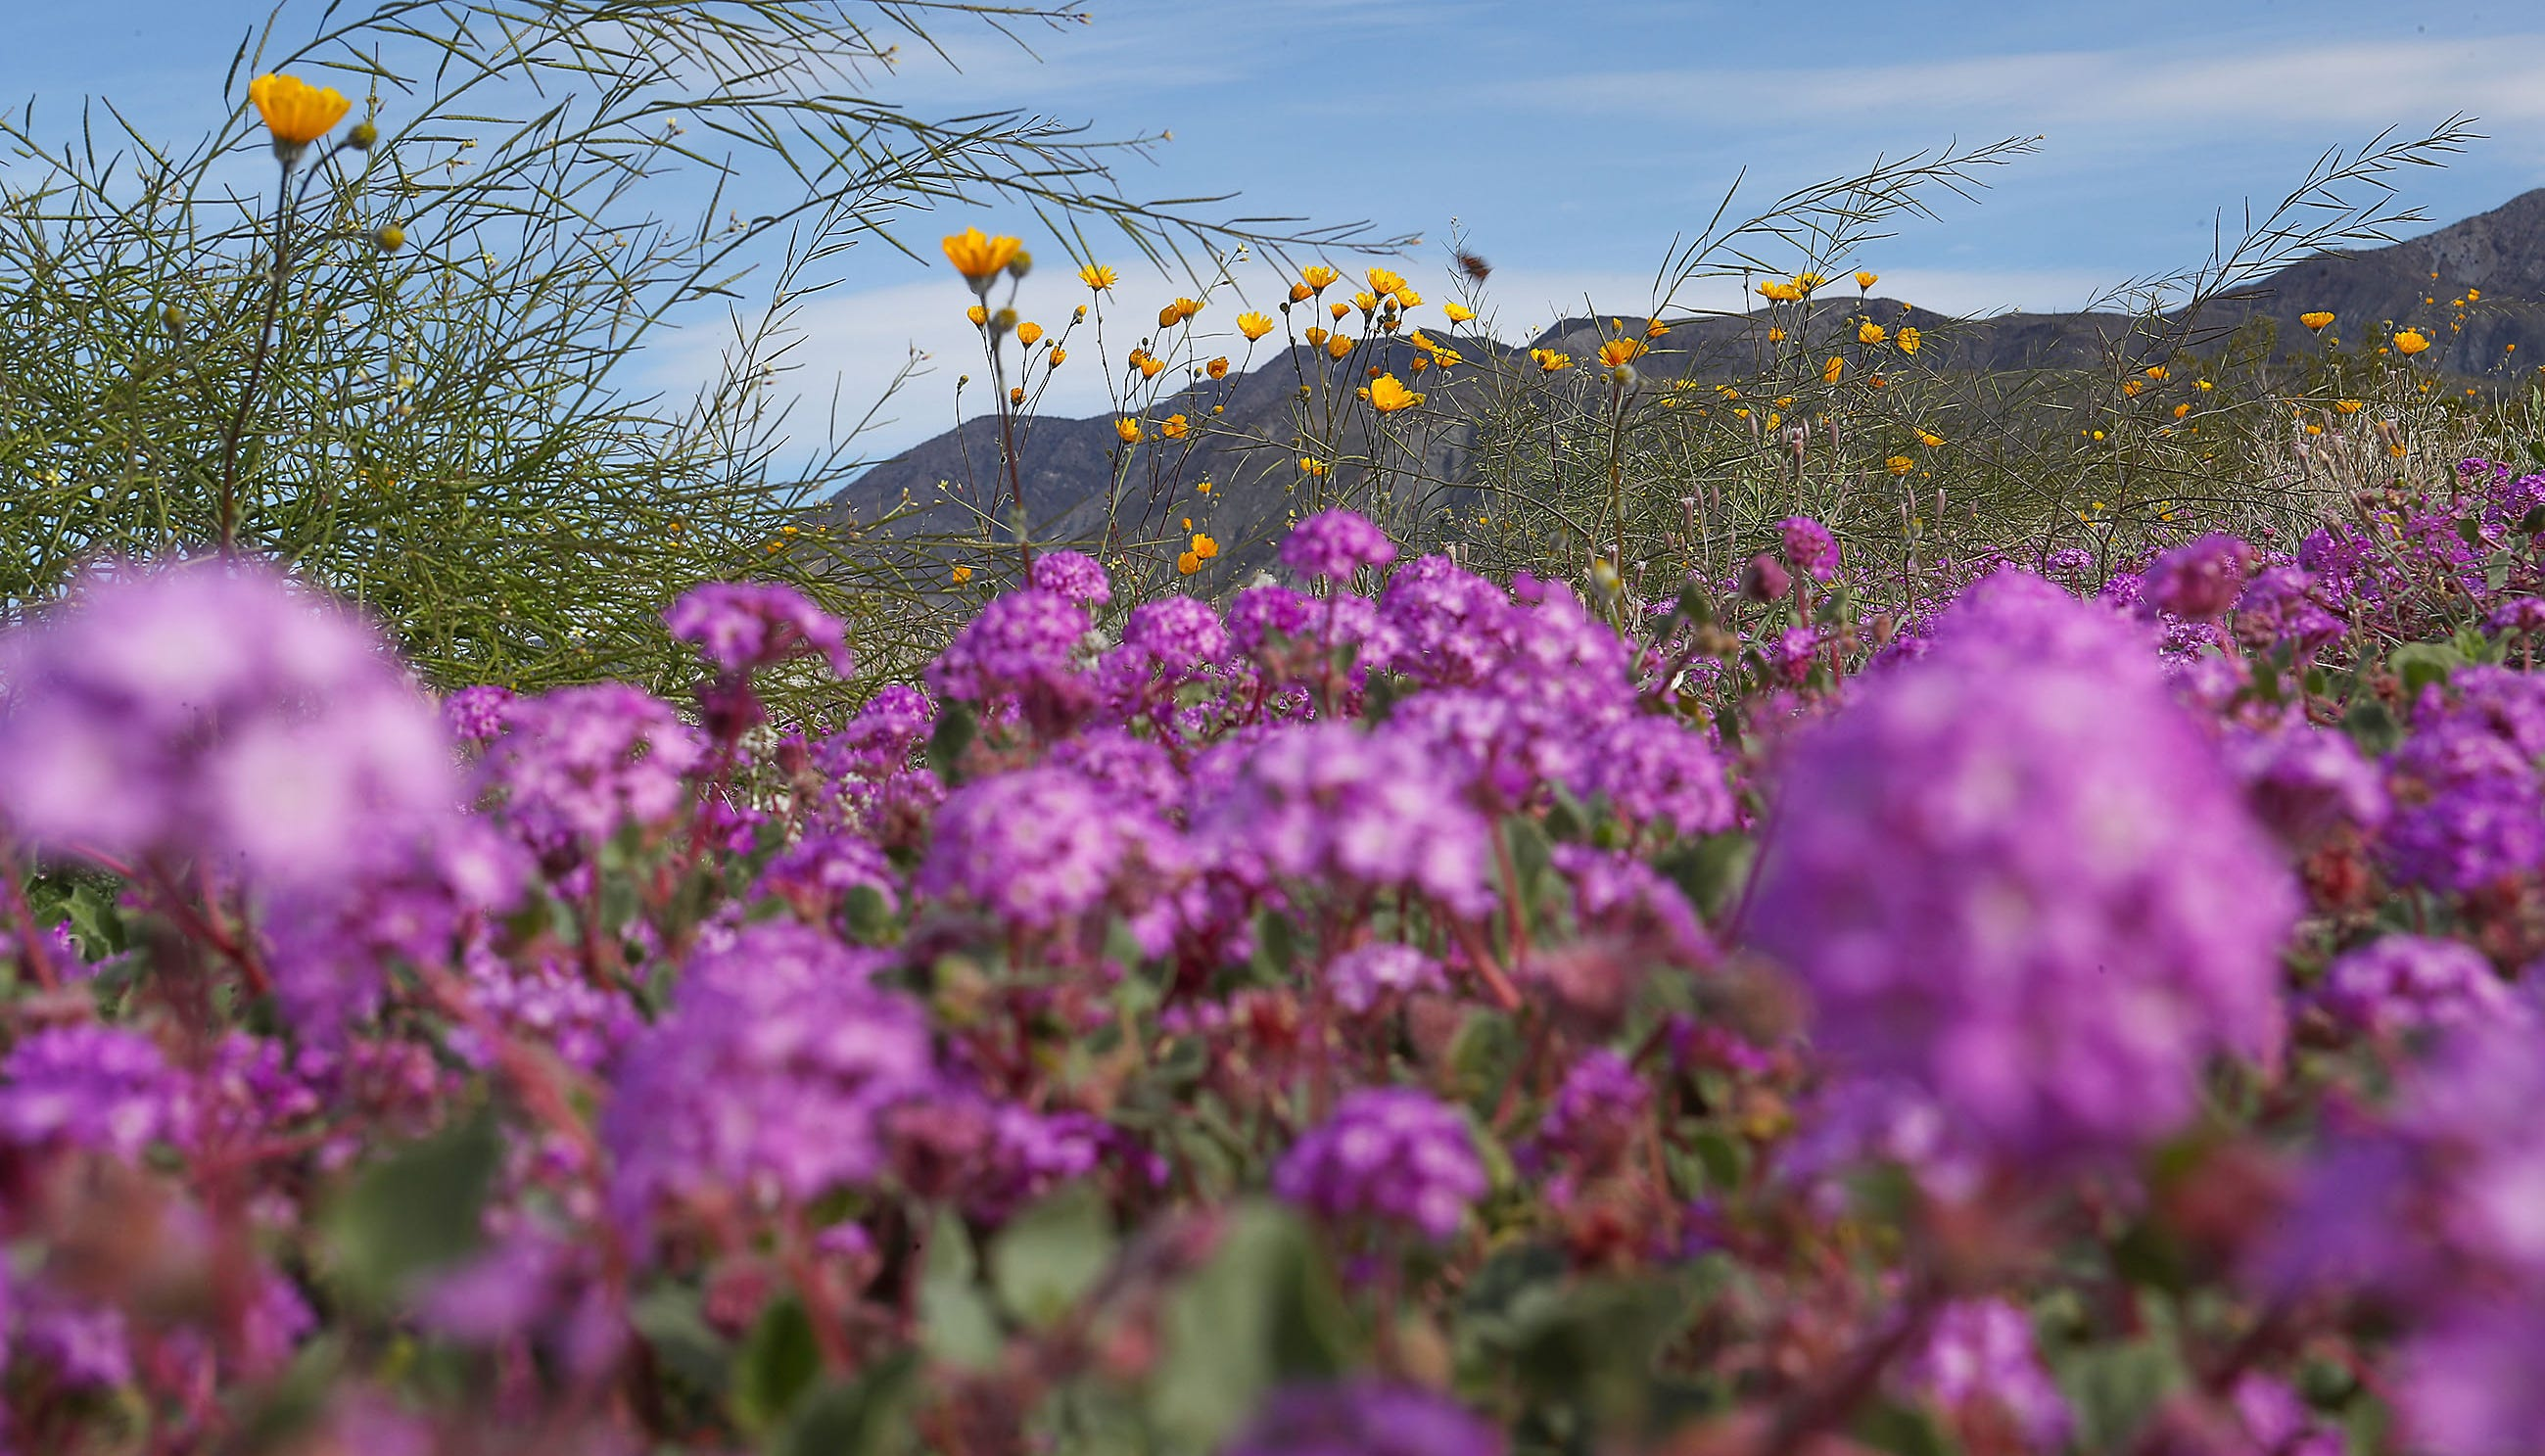 Wildflowers bloom in the Anza Borrego Desert State Park near Borrego Springs, California after wet weather earlier this year, March 1, 2019.